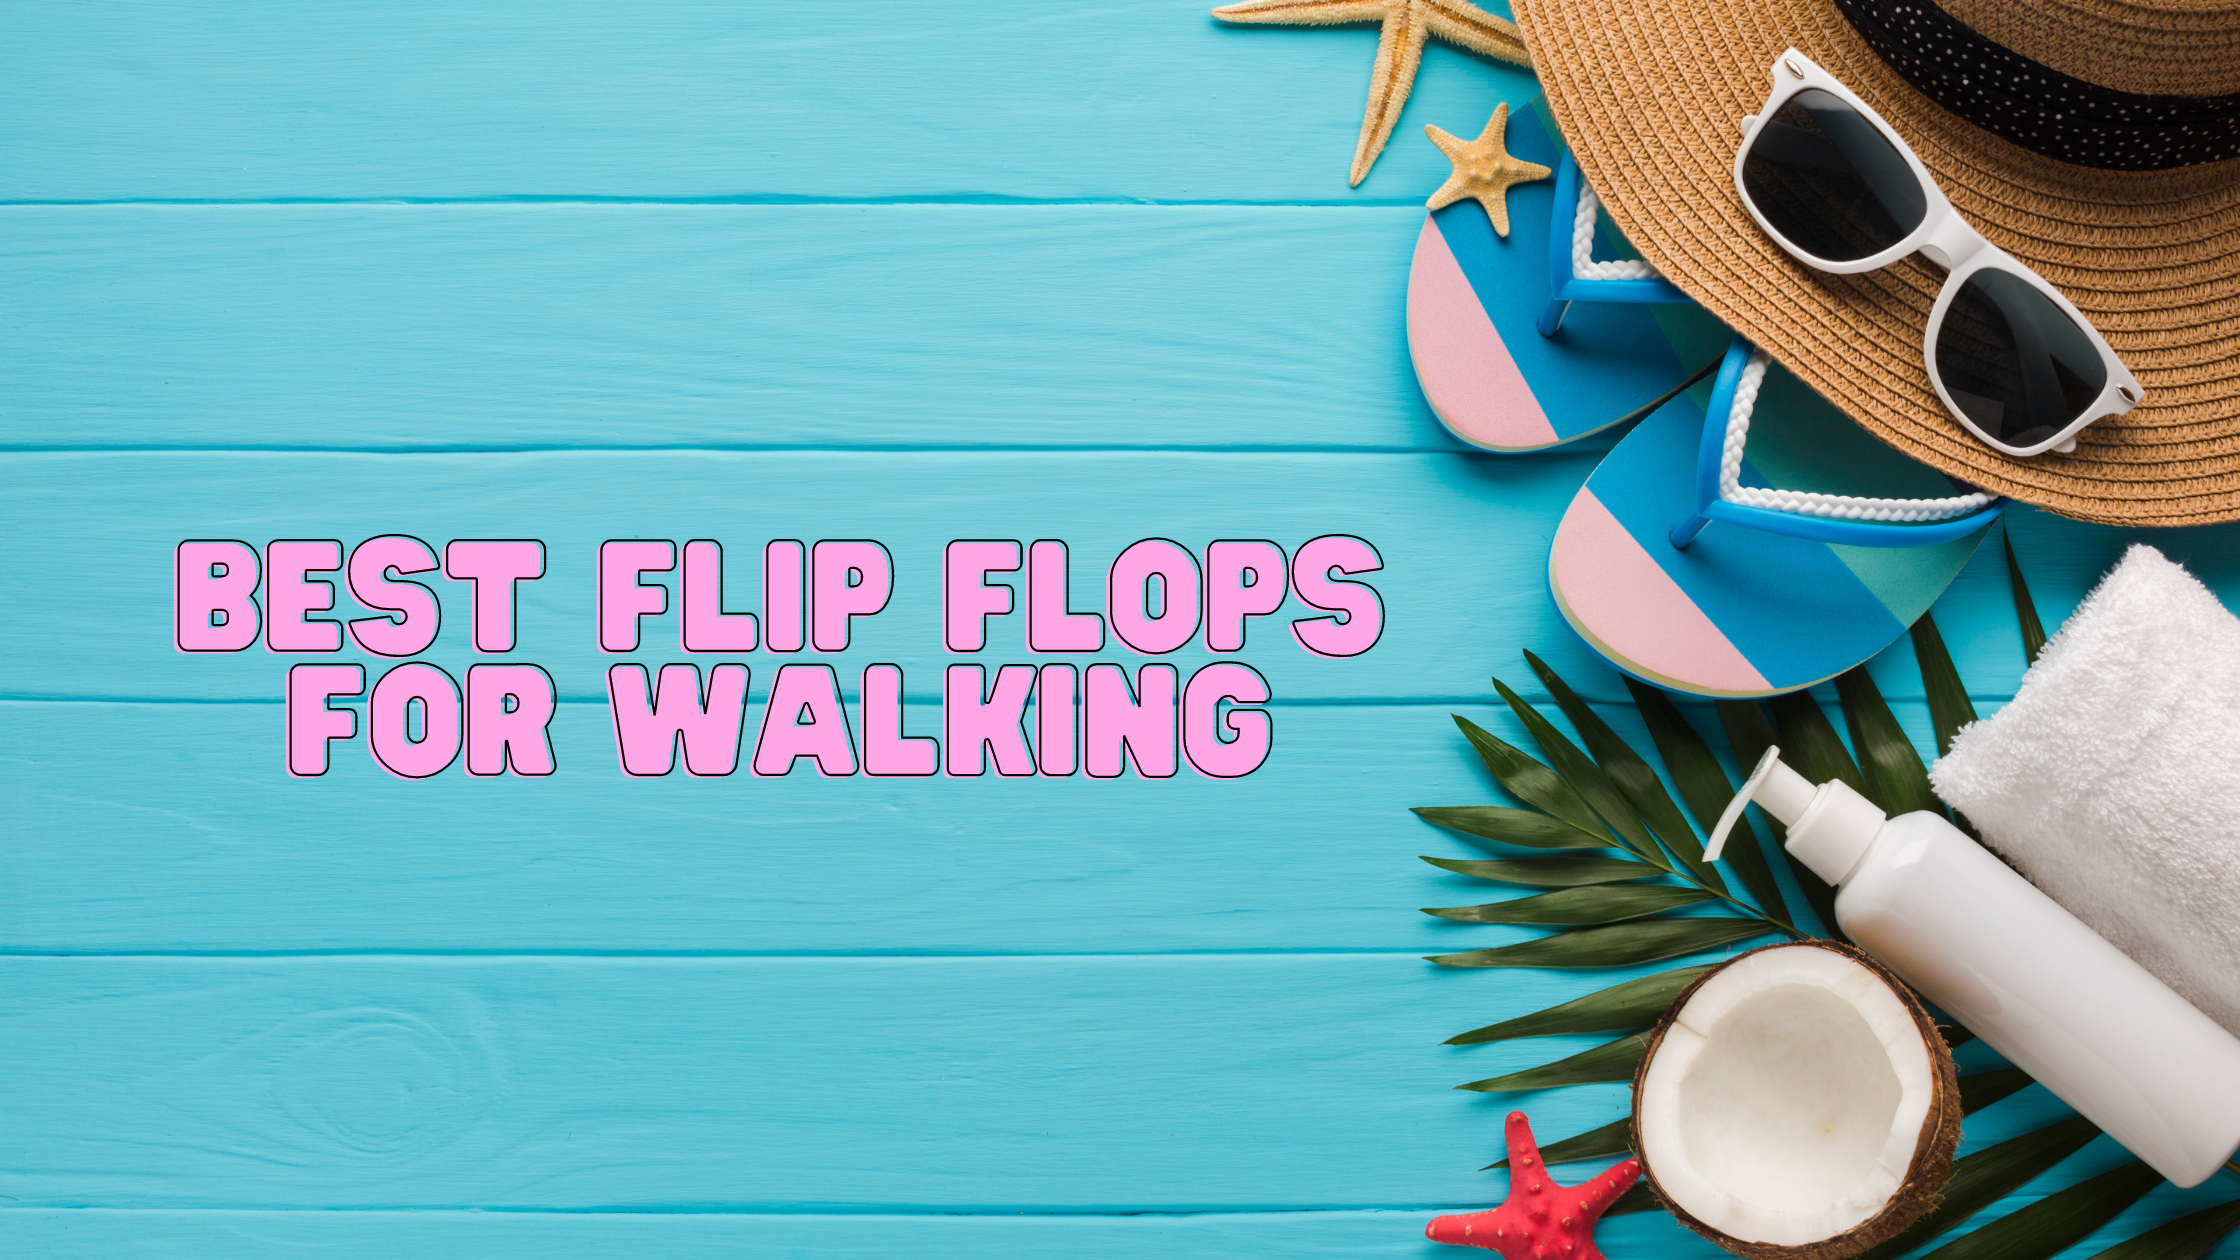 The Best Flip Flops For Walking Are Most Favourite In 2021